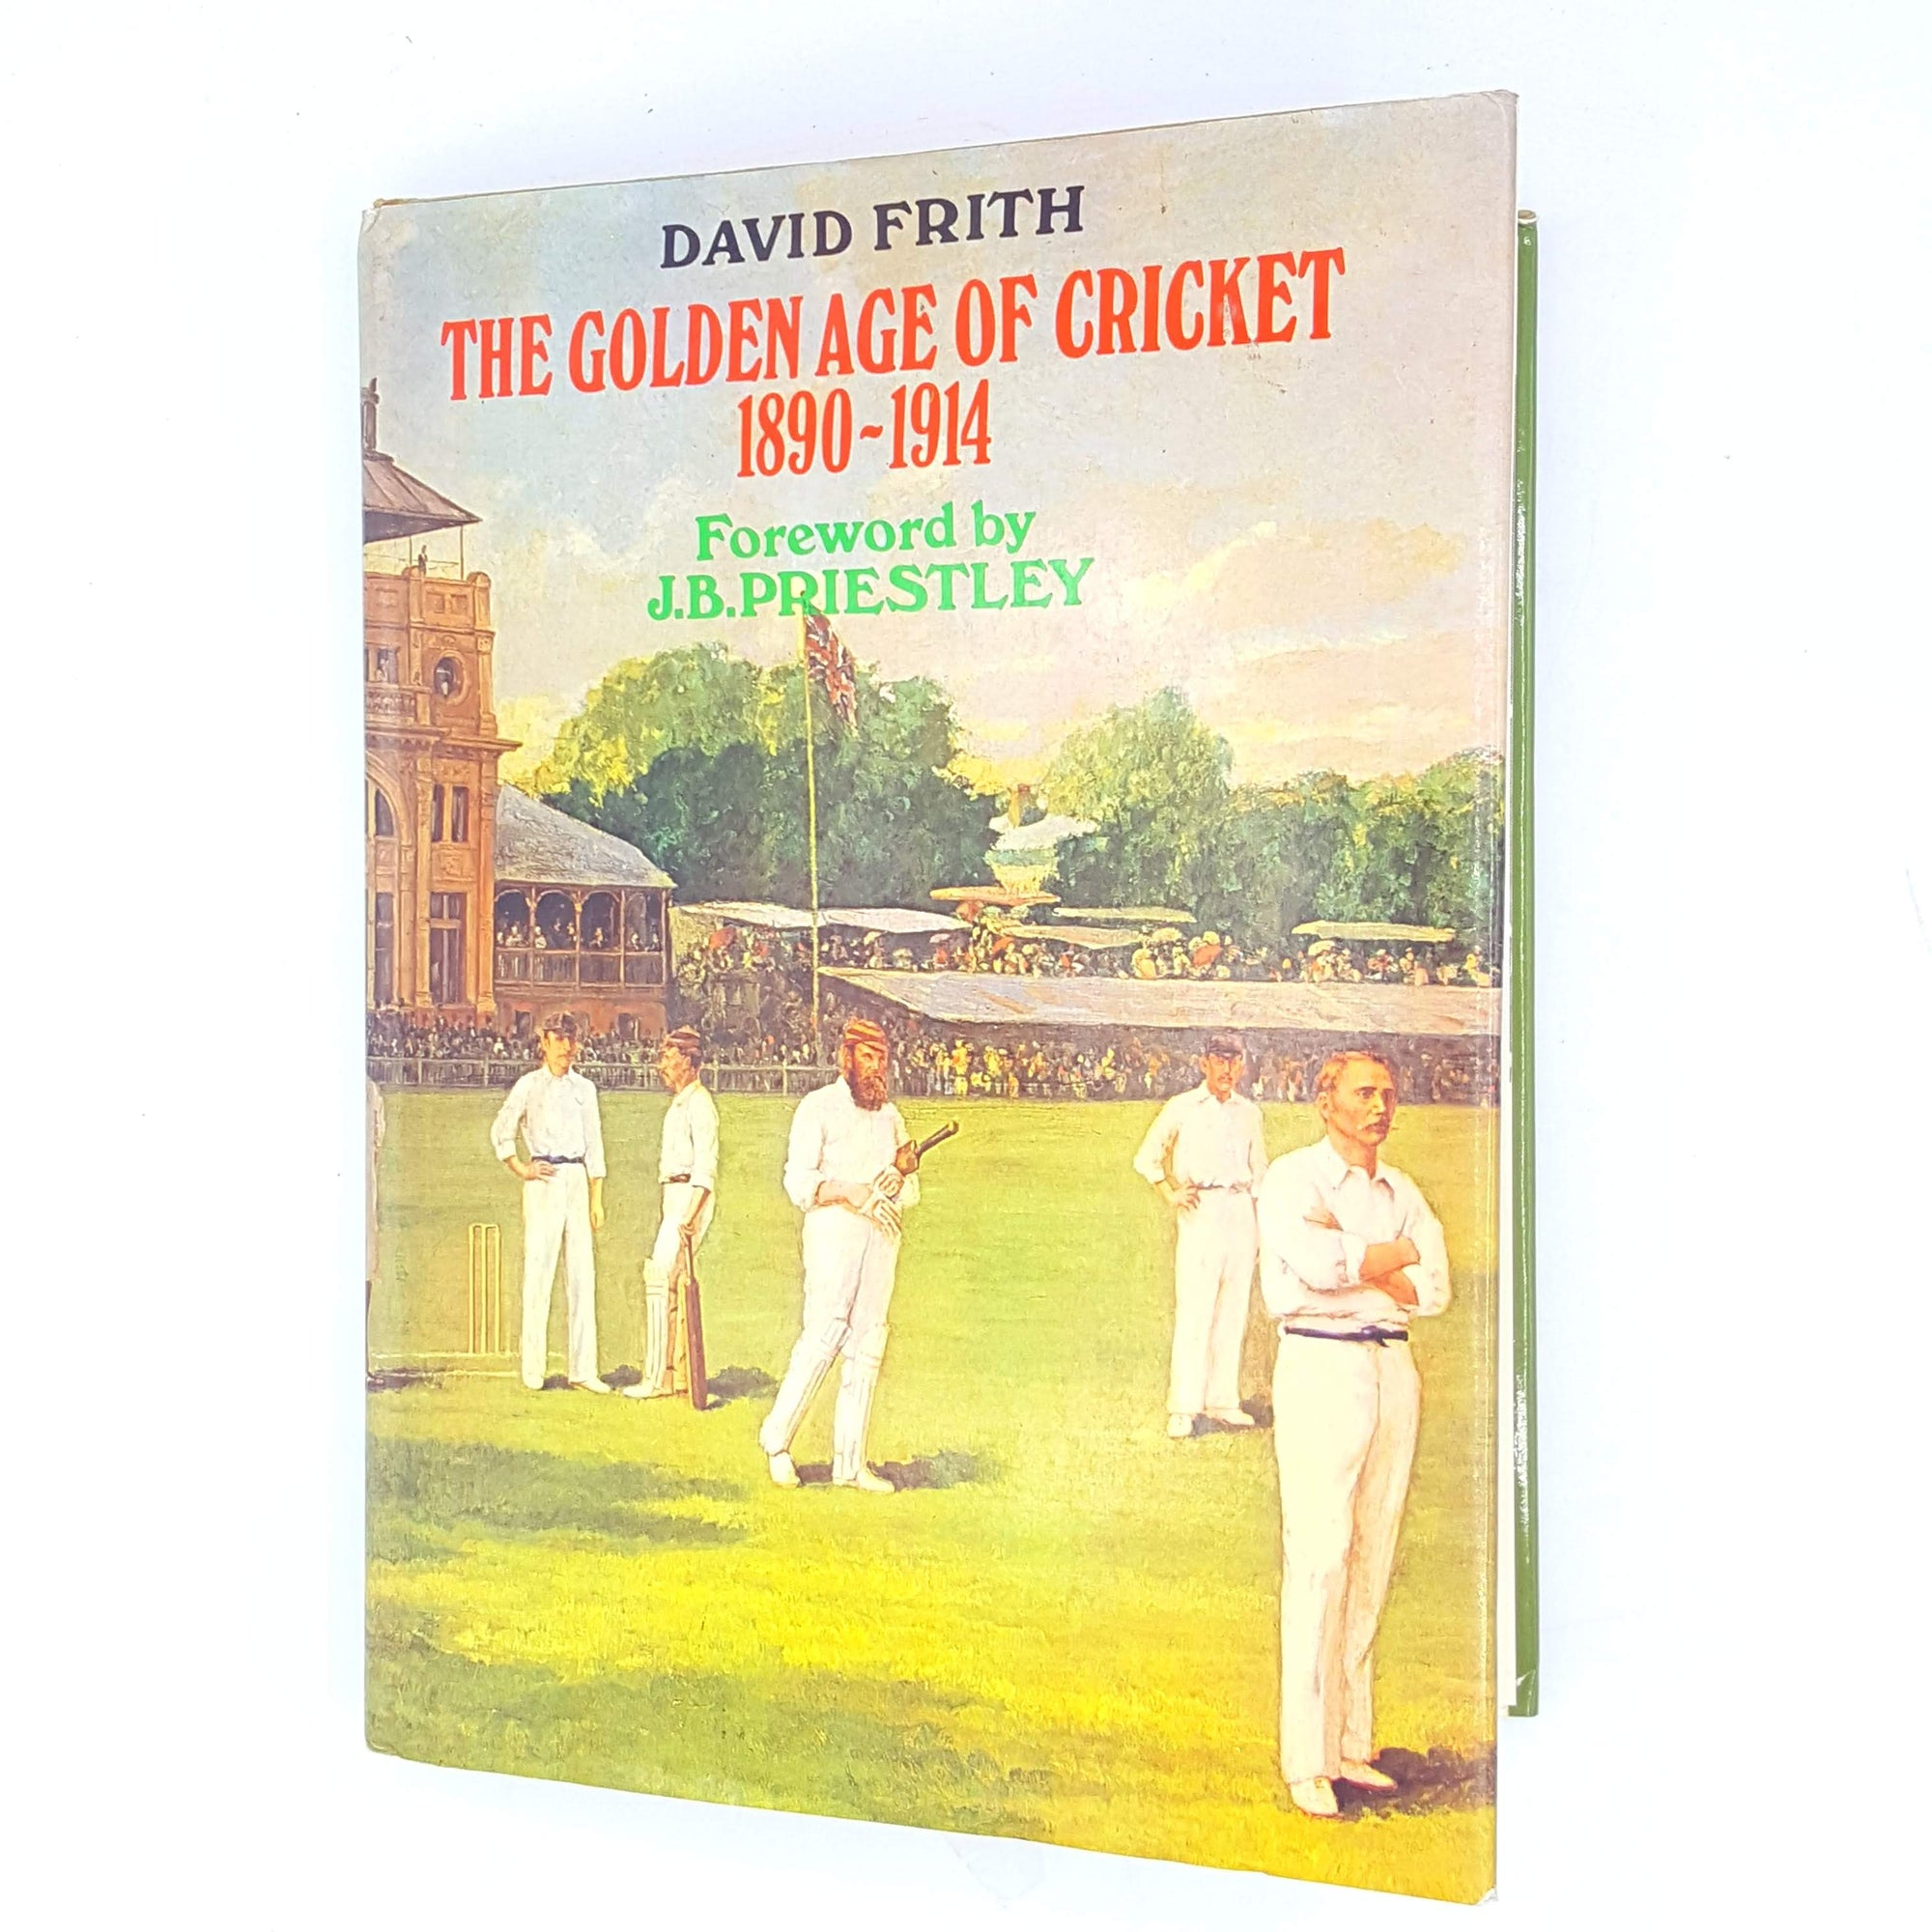 old-golden-age-books-patterned-vintage-history-classic-thrift-cricket-antique-decorative-country-house-library-sport-photography-